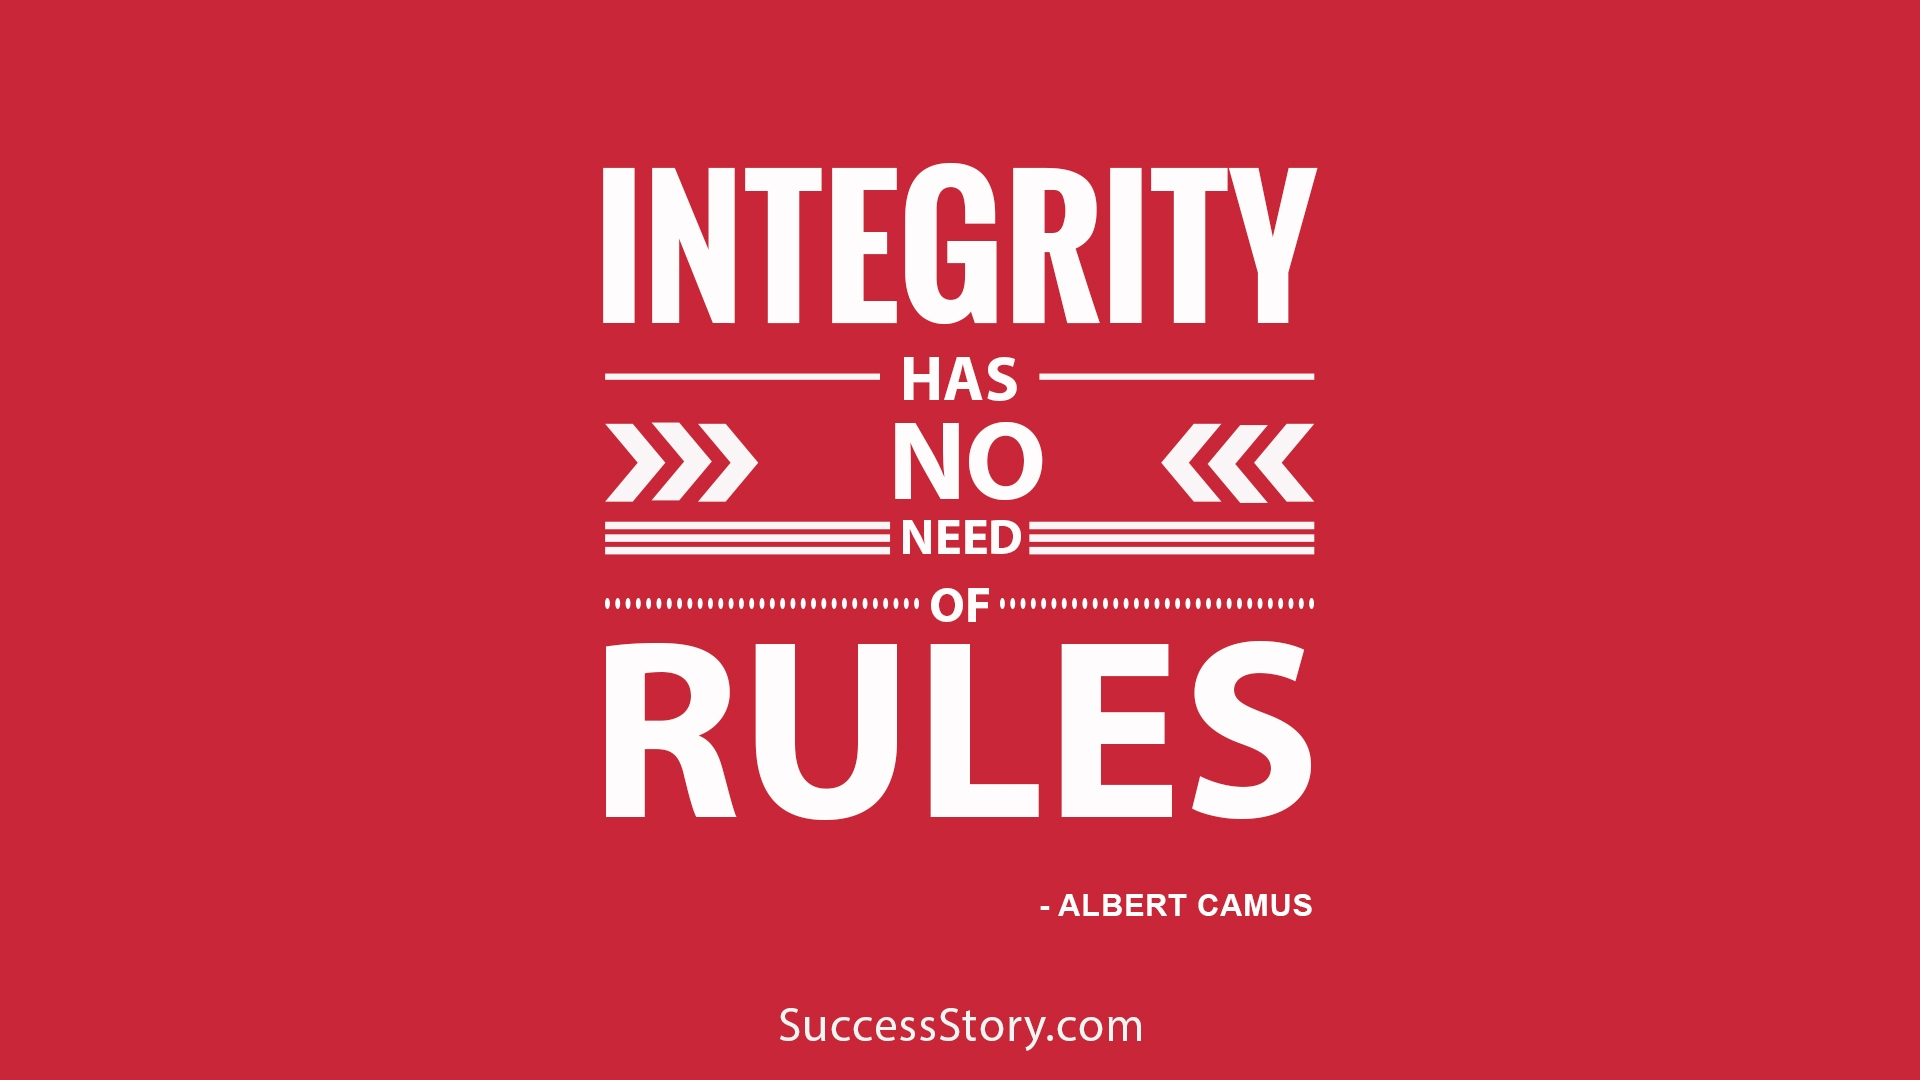 Albert camus quote about unique normal energy different - Integrity Has No